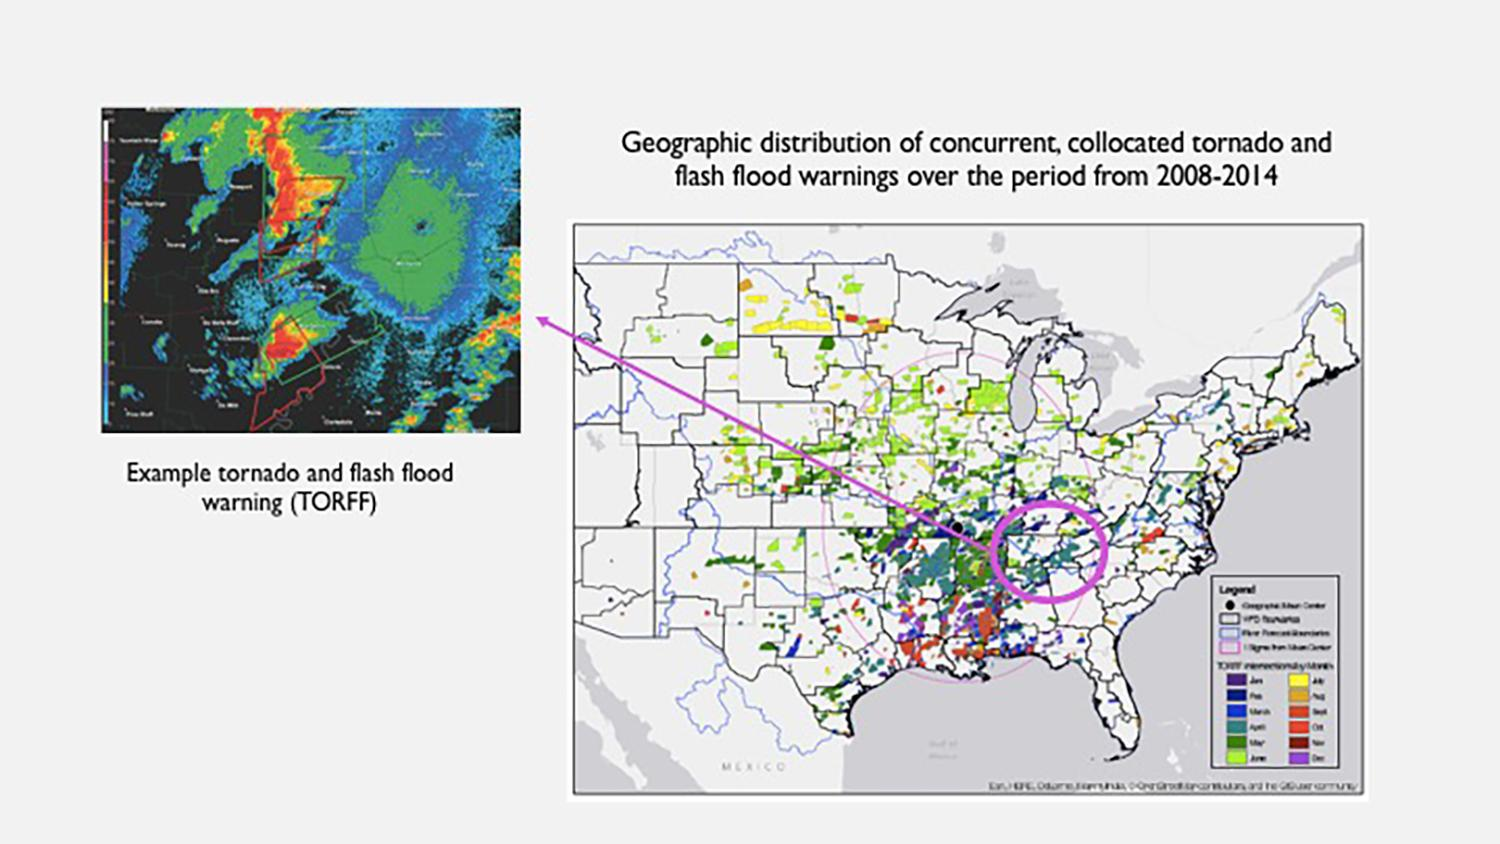 Map of geographical distribution of tornado and flash flood warnings